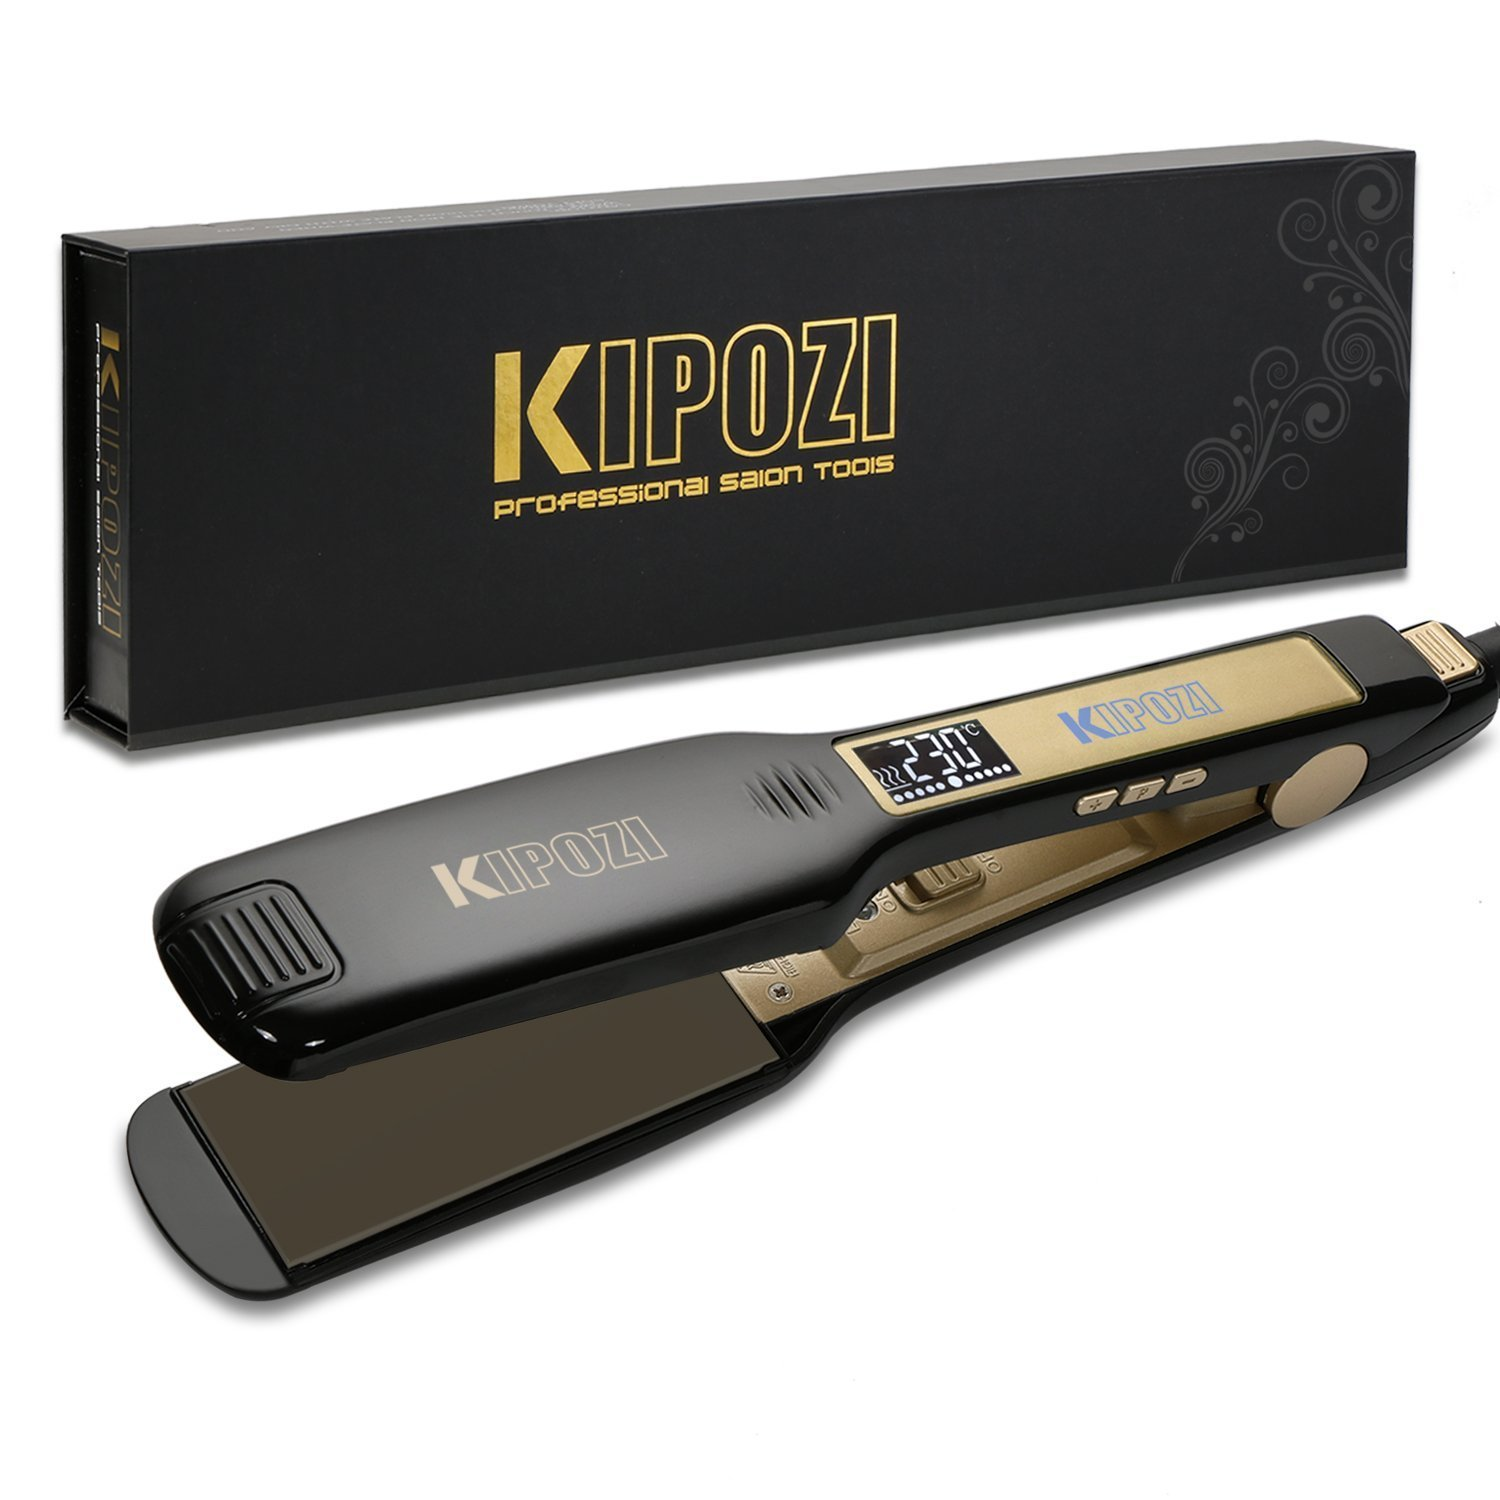 KIPOZI Professional Hair Straighteners UK Wide Plates with Digital LCD Display Dual Voltage Salon Fast Hair Styler,Black product image